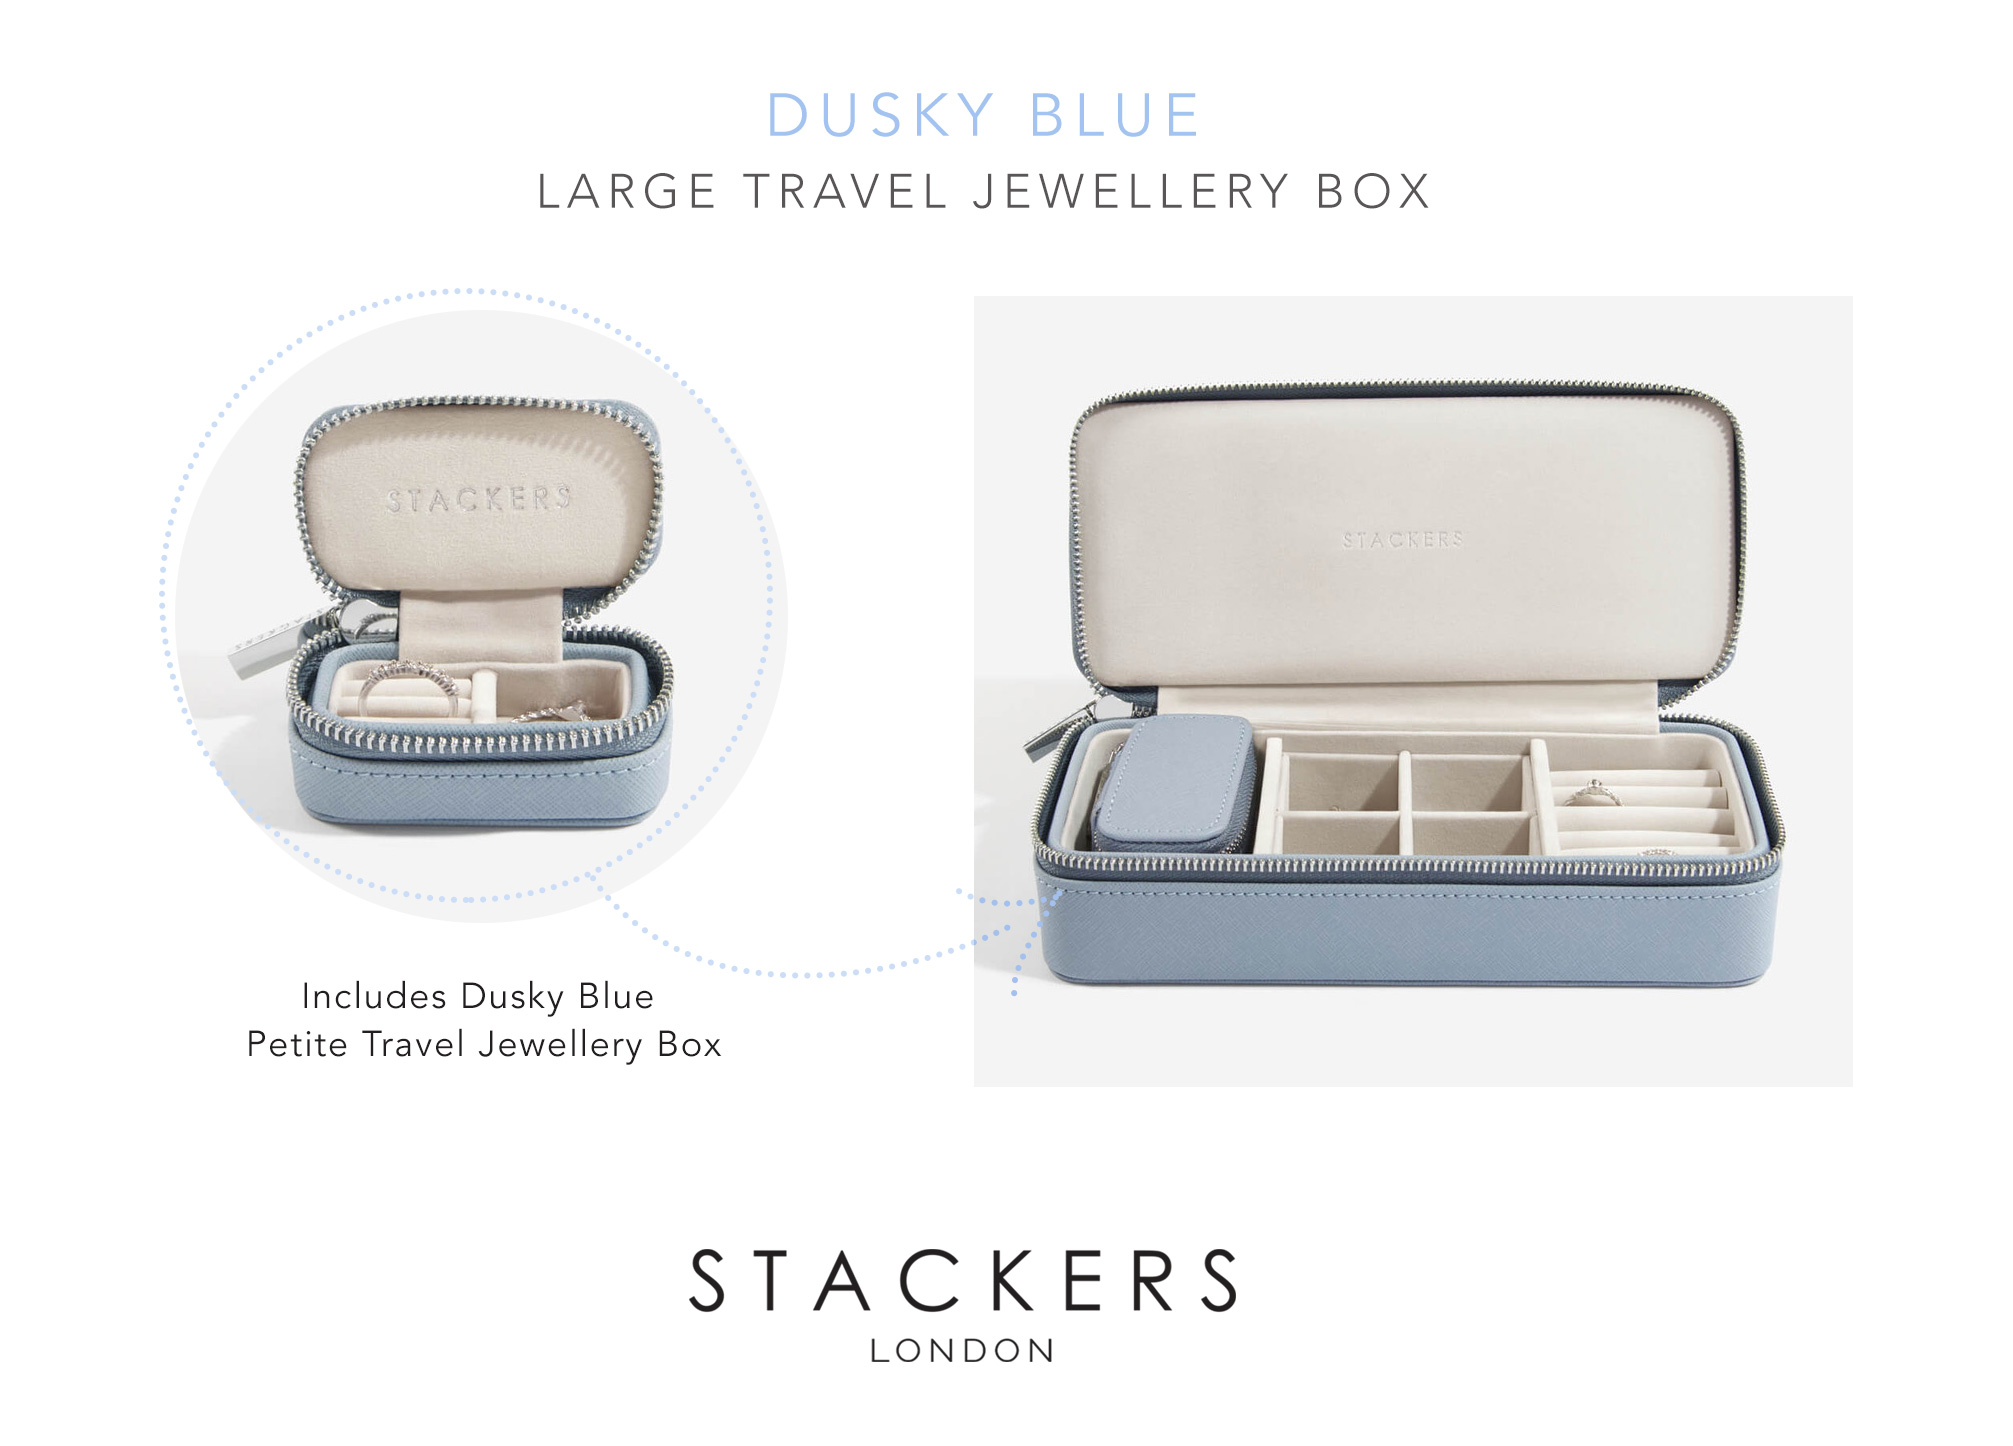 Stackers Large Travel Jewellery Box The Art Of Pandora More Than